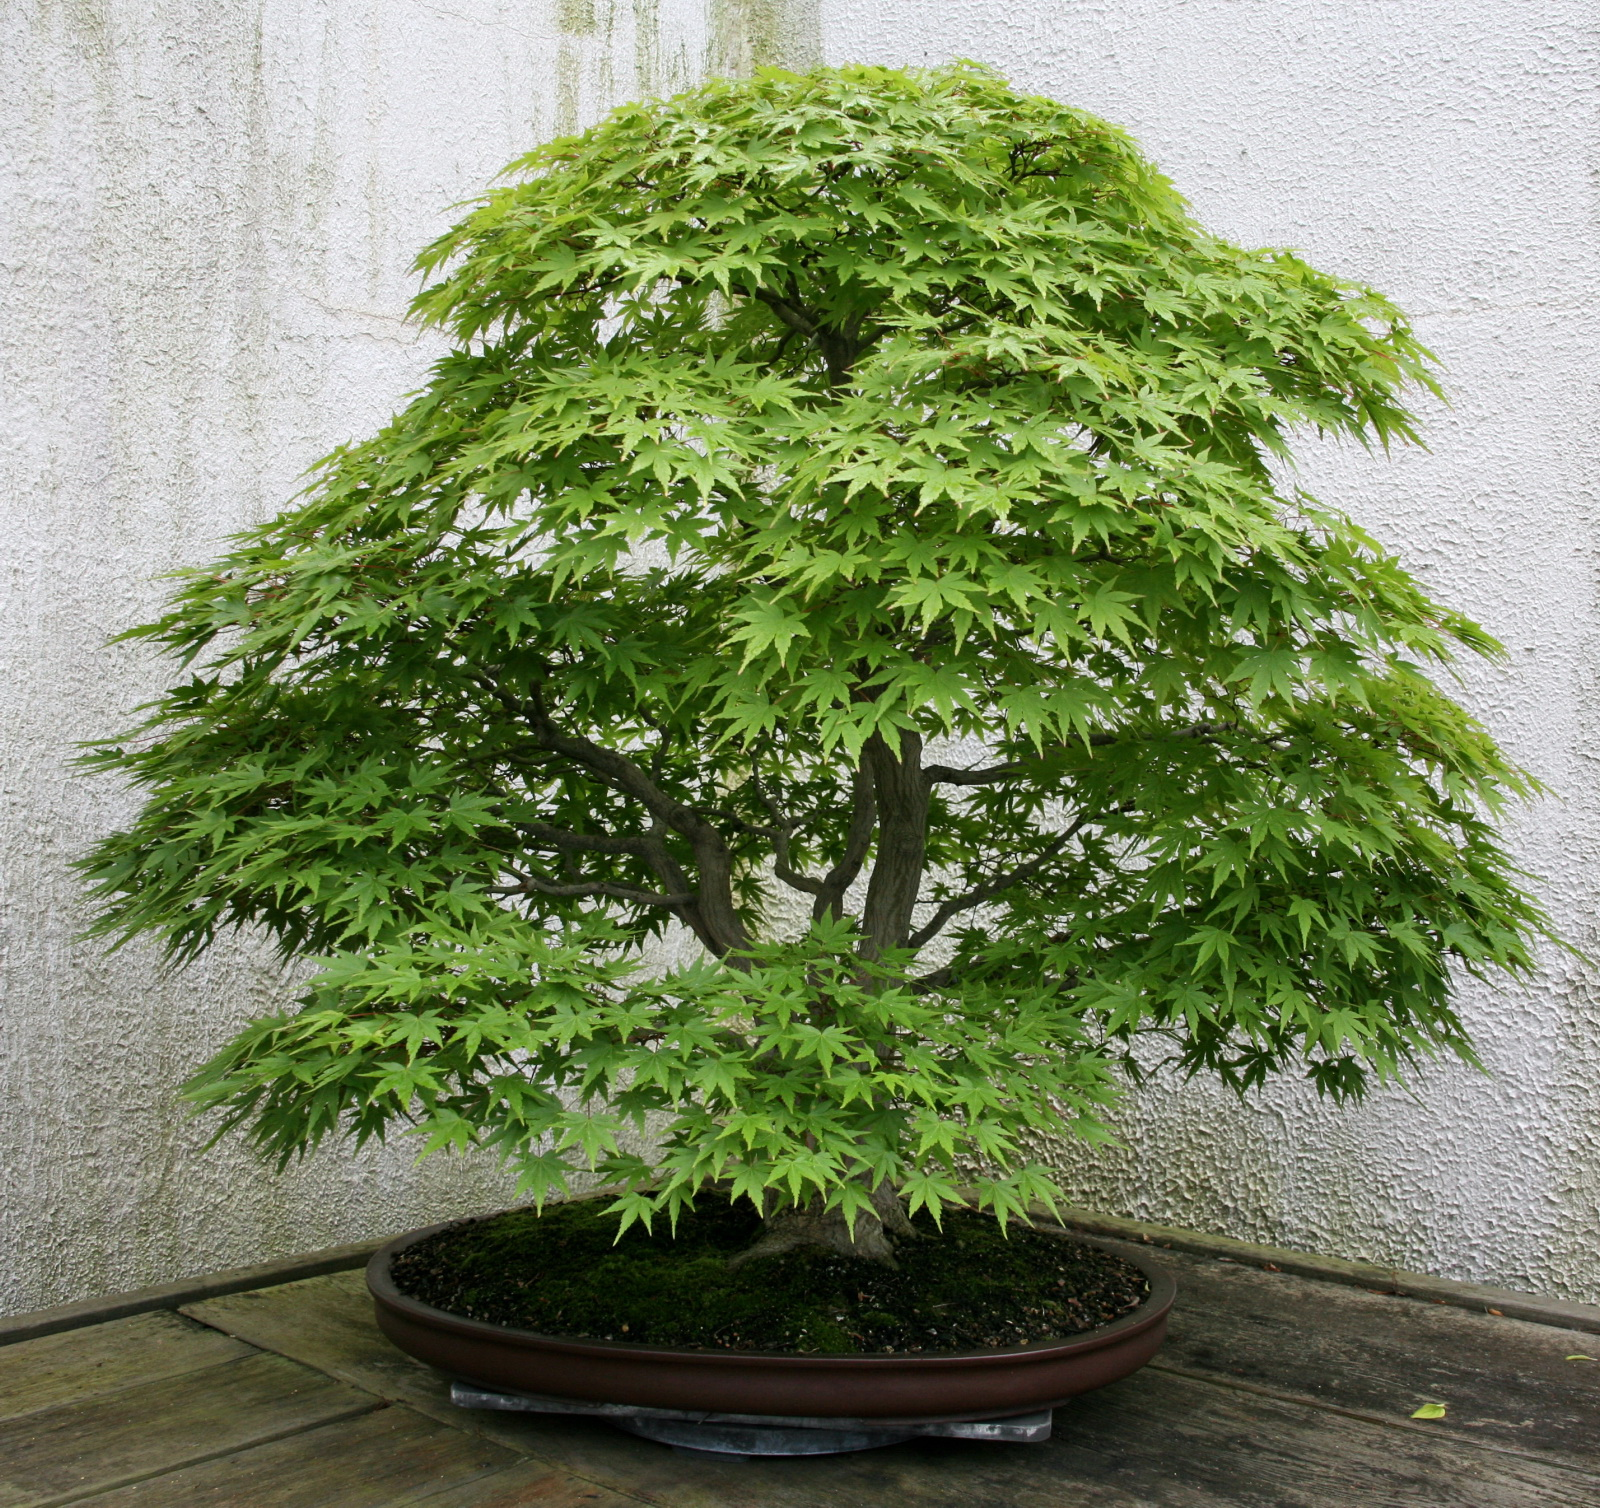 japanese maple acer palmatum review images. Black Bedroom Furniture Sets. Home Design Ideas